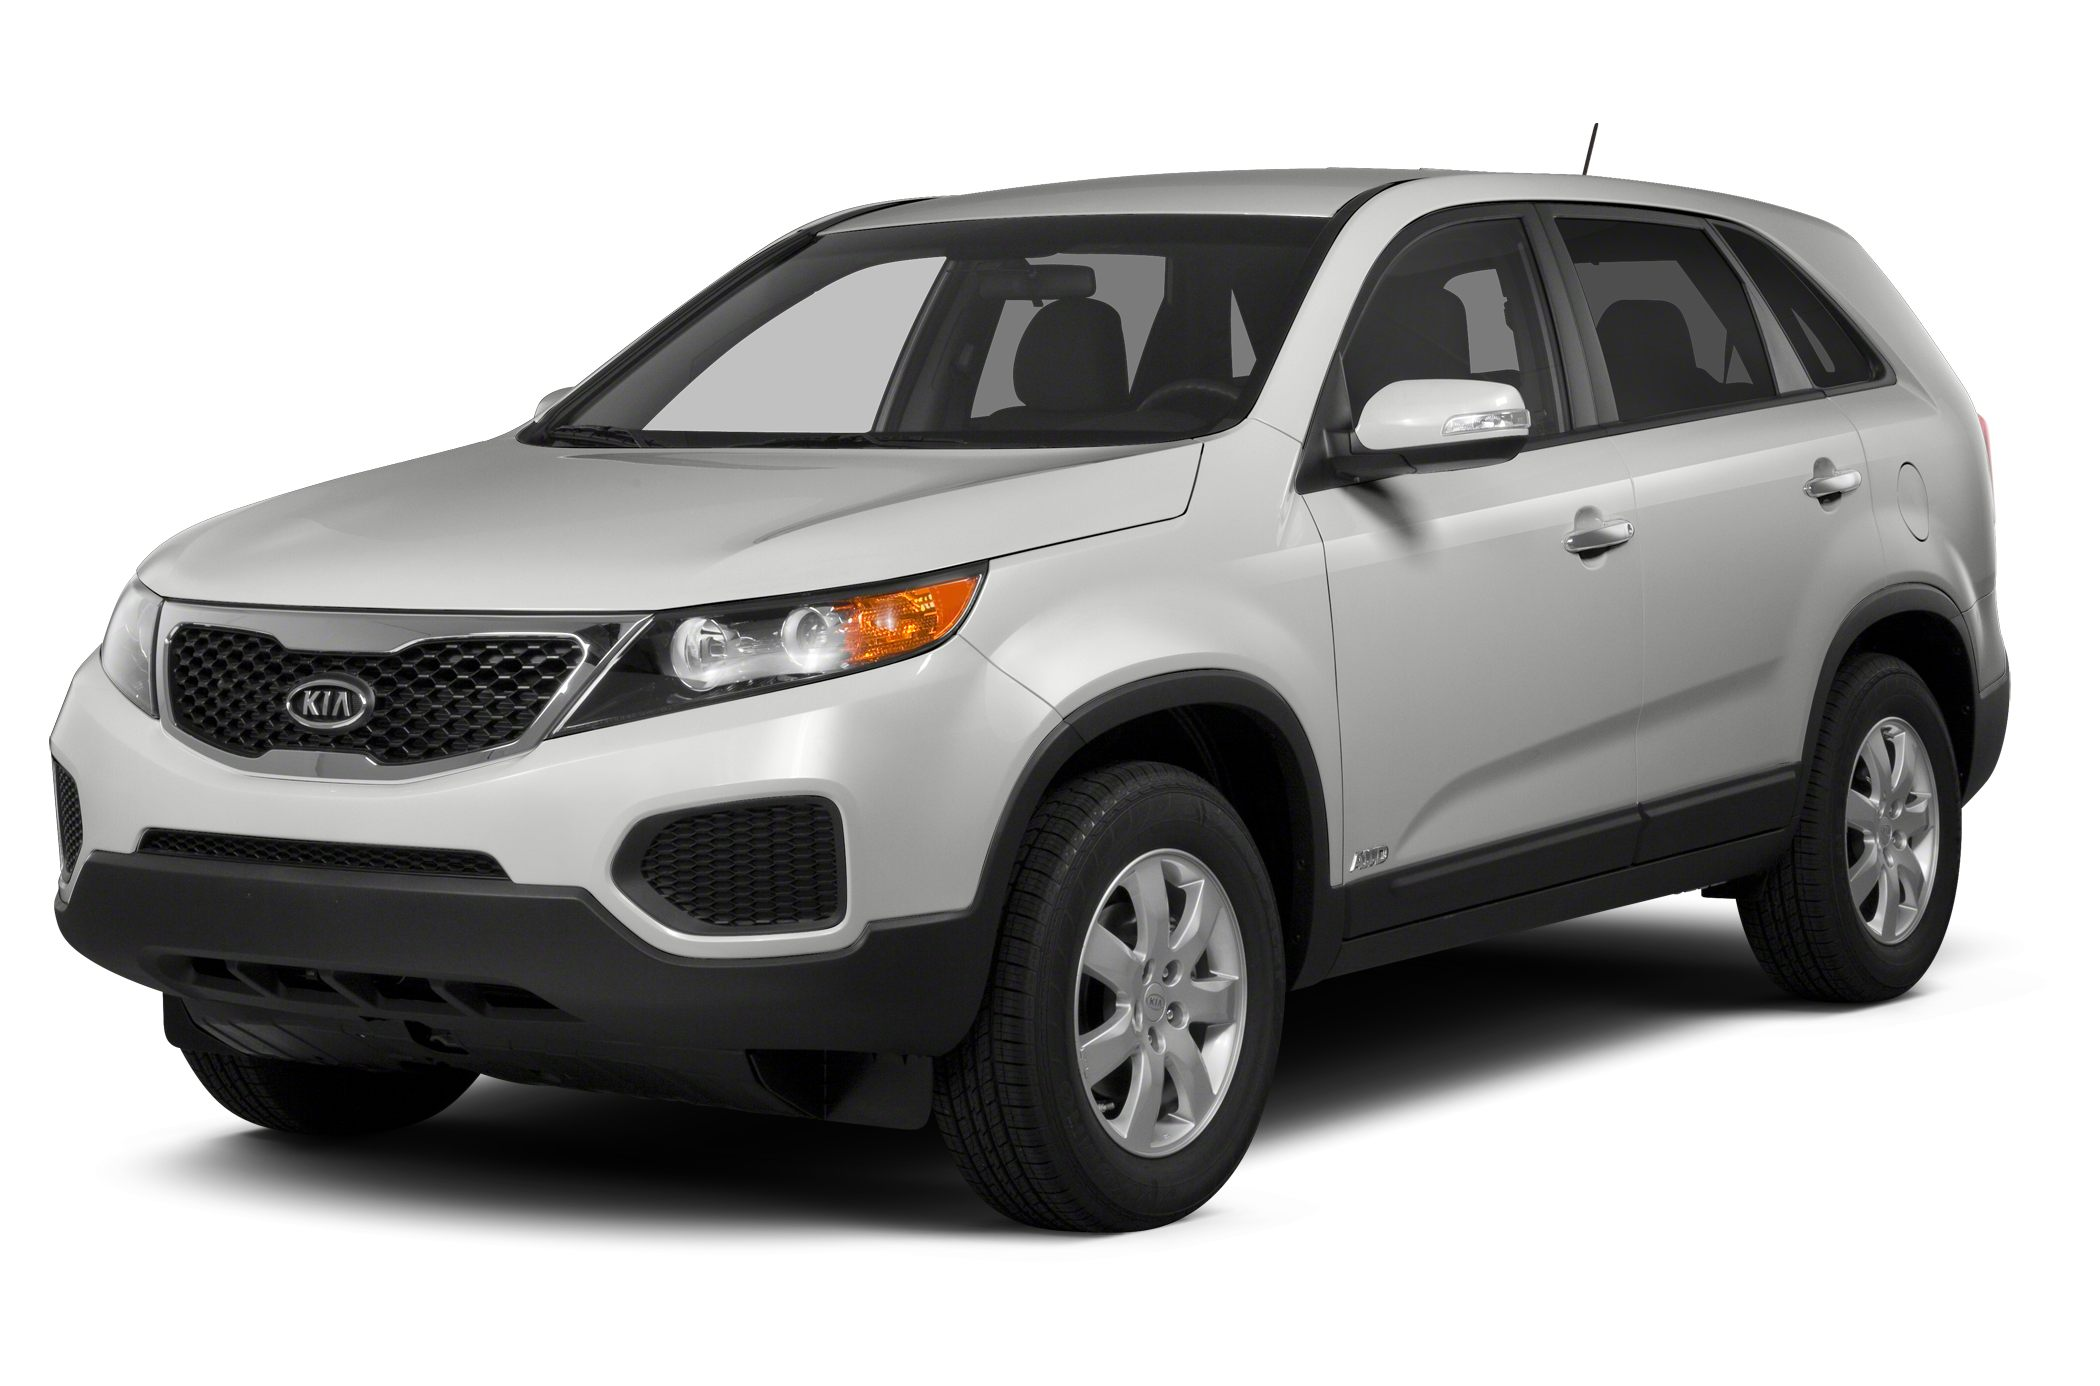 2011 Kia Sorento EX V6 For information on this vehicle pleasecontact Teresa in the Internet Depart